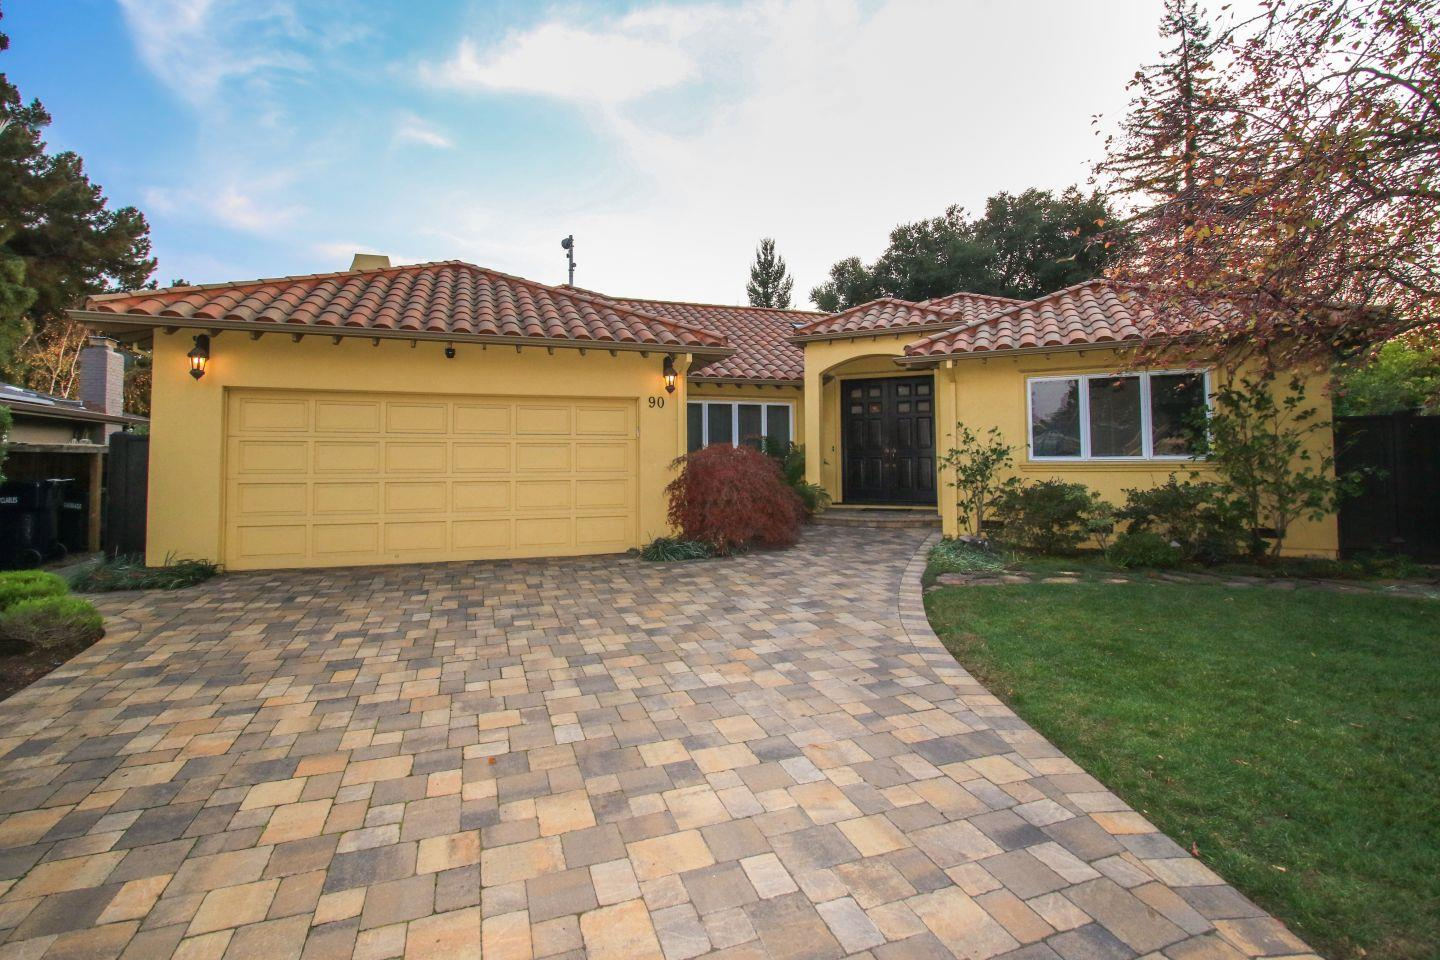 Single Family Home for Sale at 90 Sioux Lane 90 Sioux Lane Los Altos, California 94022 United States